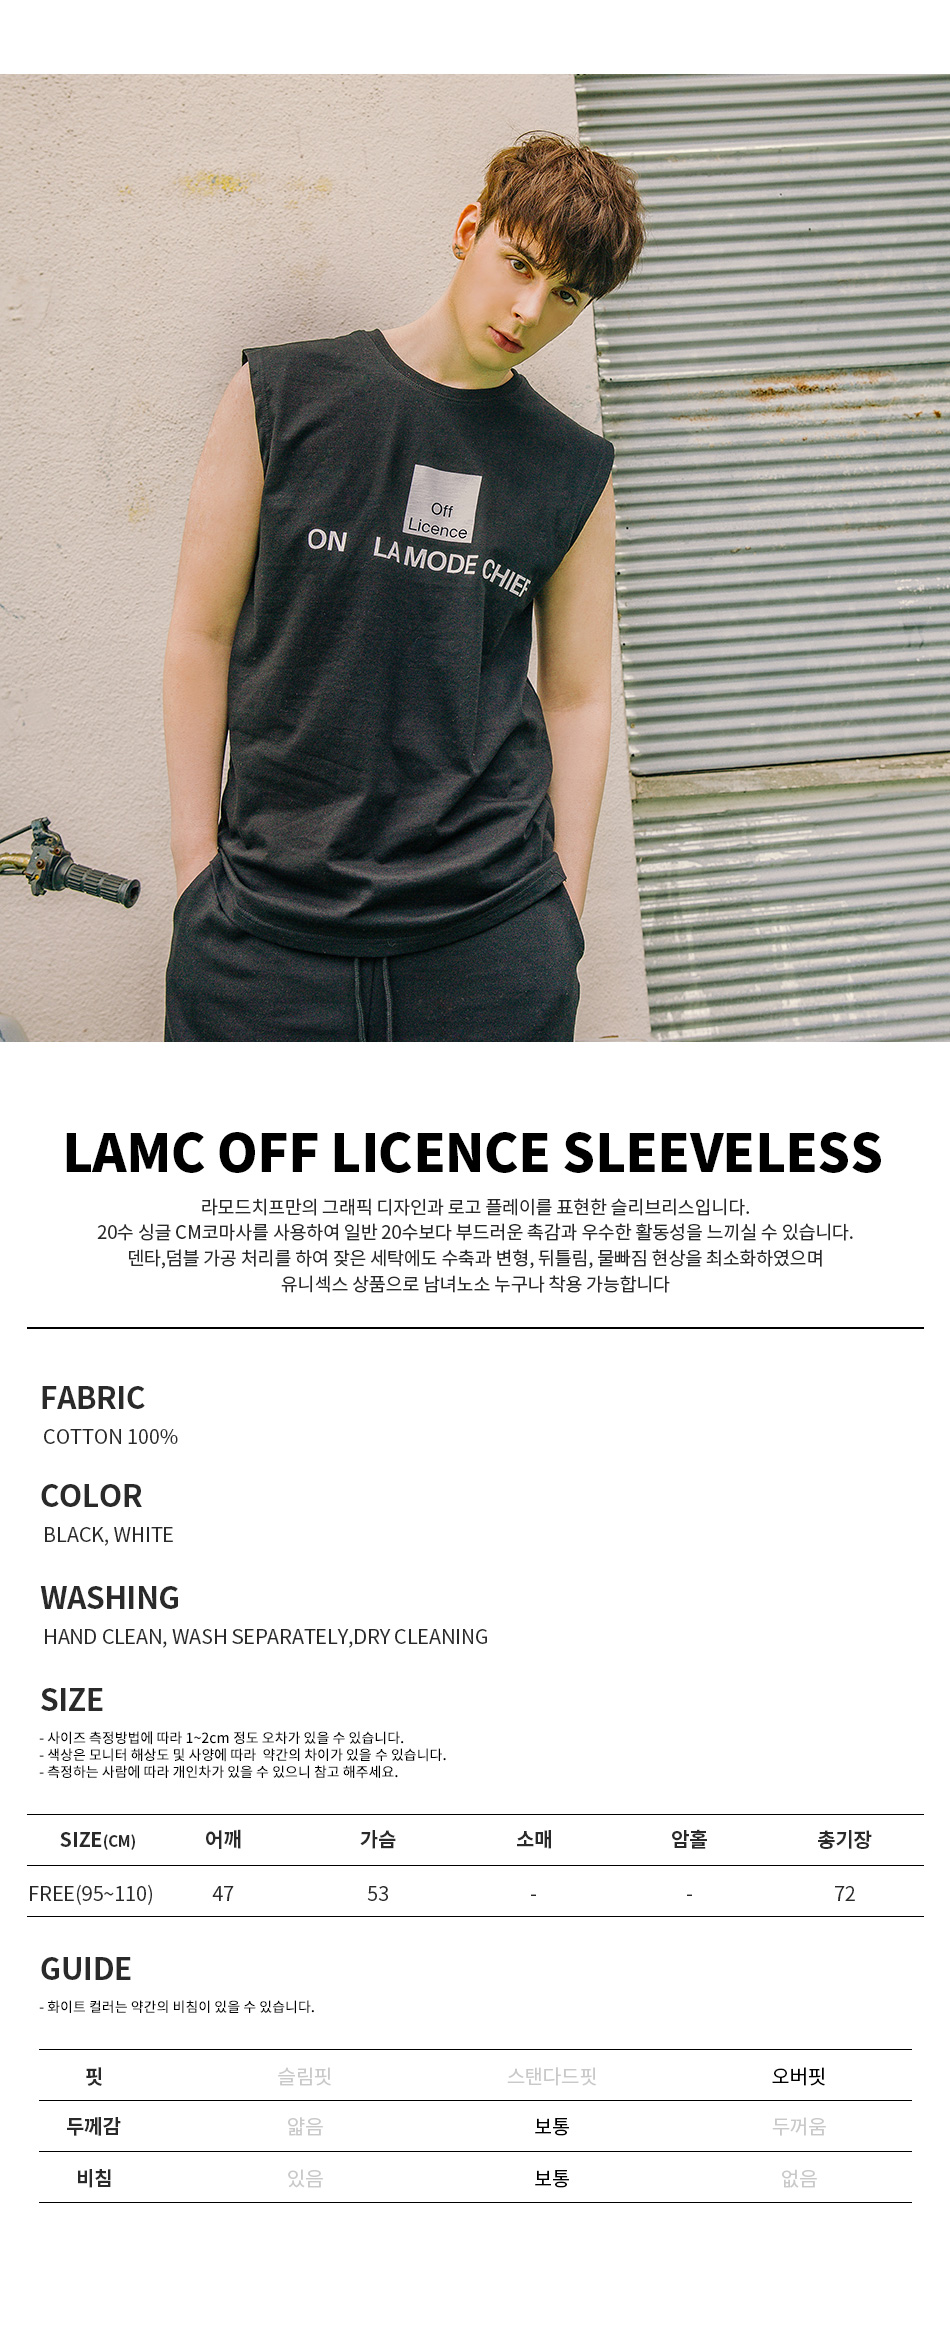 라모드치프(LAMODECHIEF) LAMC OFF LICENCE SLEEVELESS (BLACK)